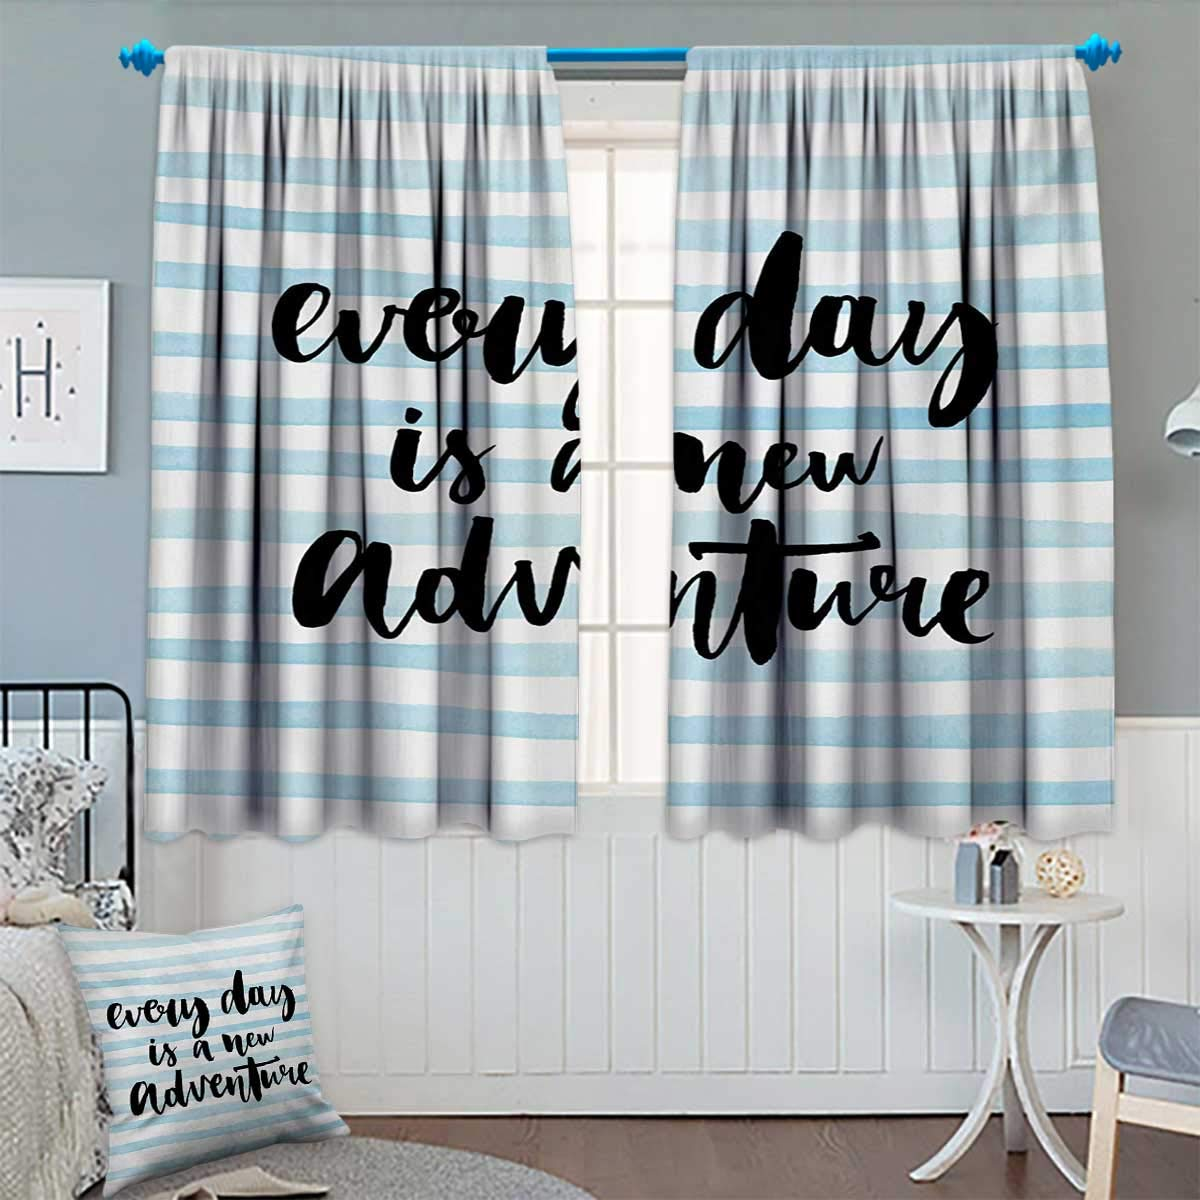 Chaneyhouse Adventure Thermal Insulating Blackout Curtain Every Day is a New Adventure Quote Inspirational Things About Life Artwork Patterned Drape for Glass Door 55'' W x 39'' L Baby Blue Black